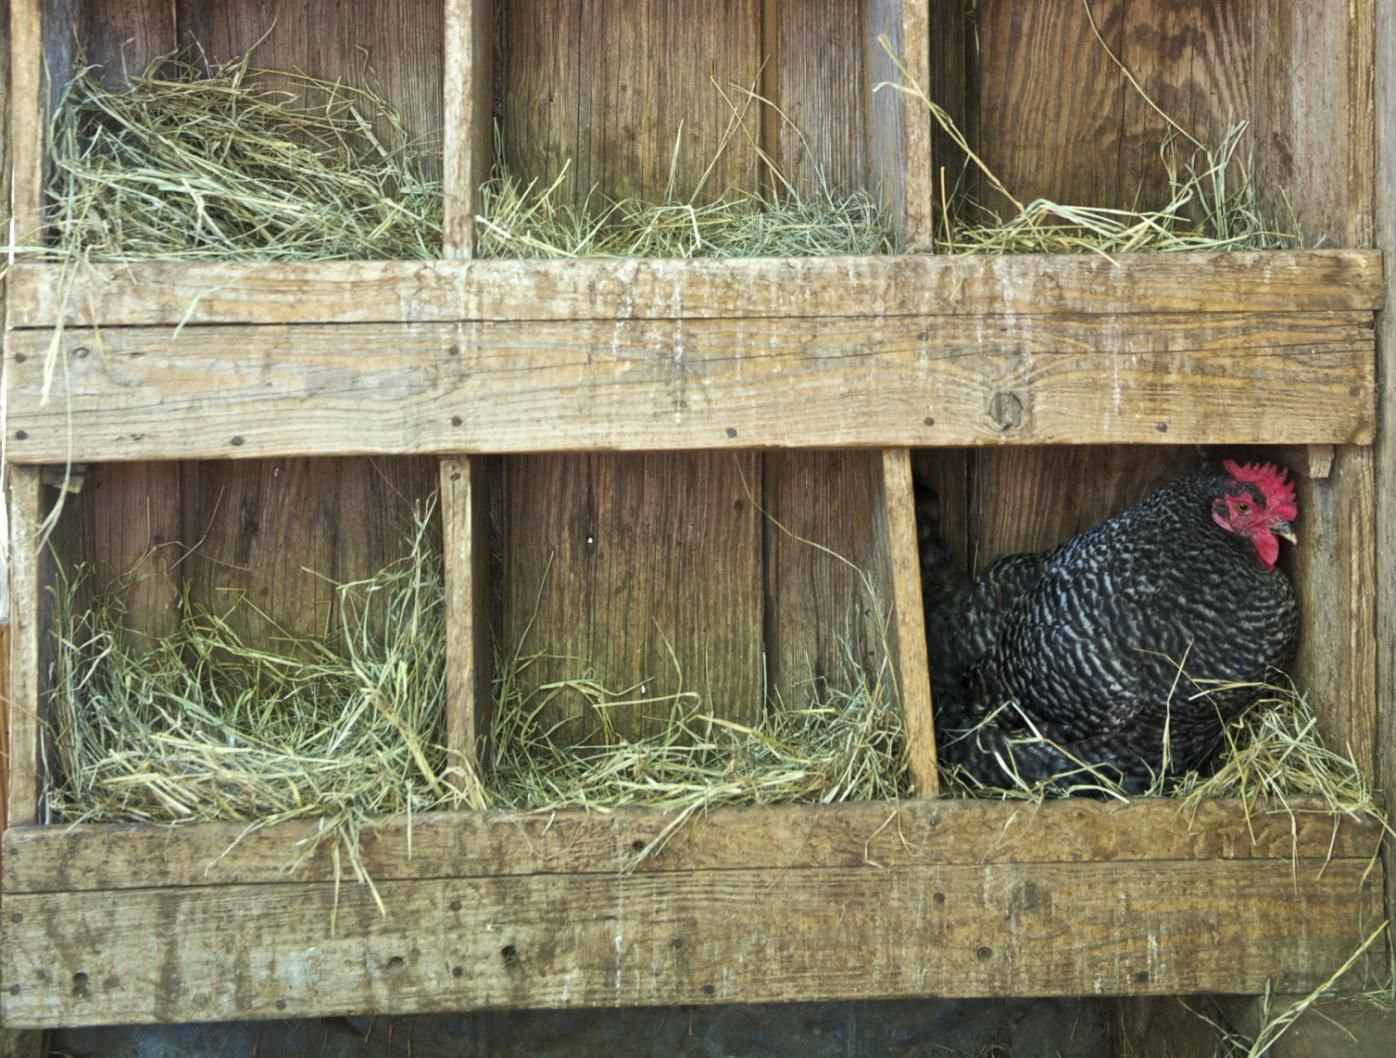 What dating sites do chickens use